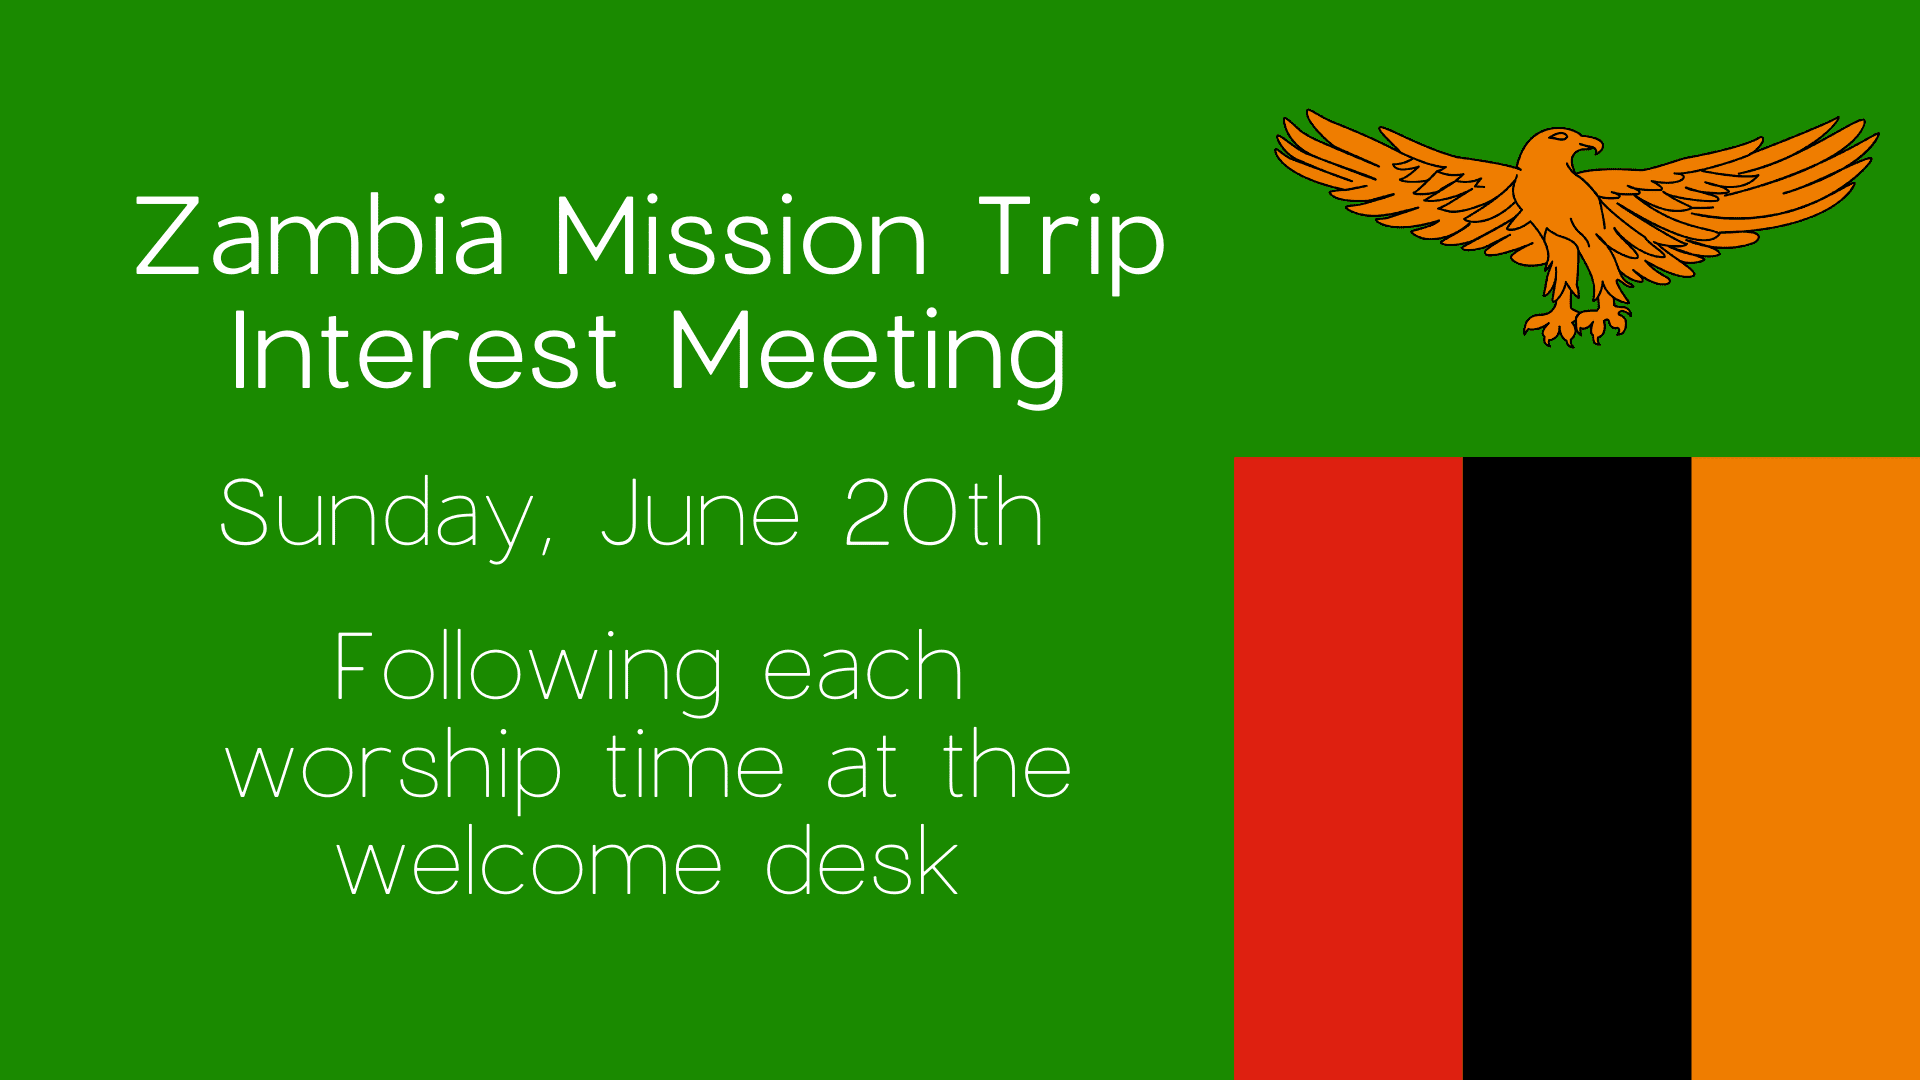 Zambia Mission Trip Interest Meeting banner